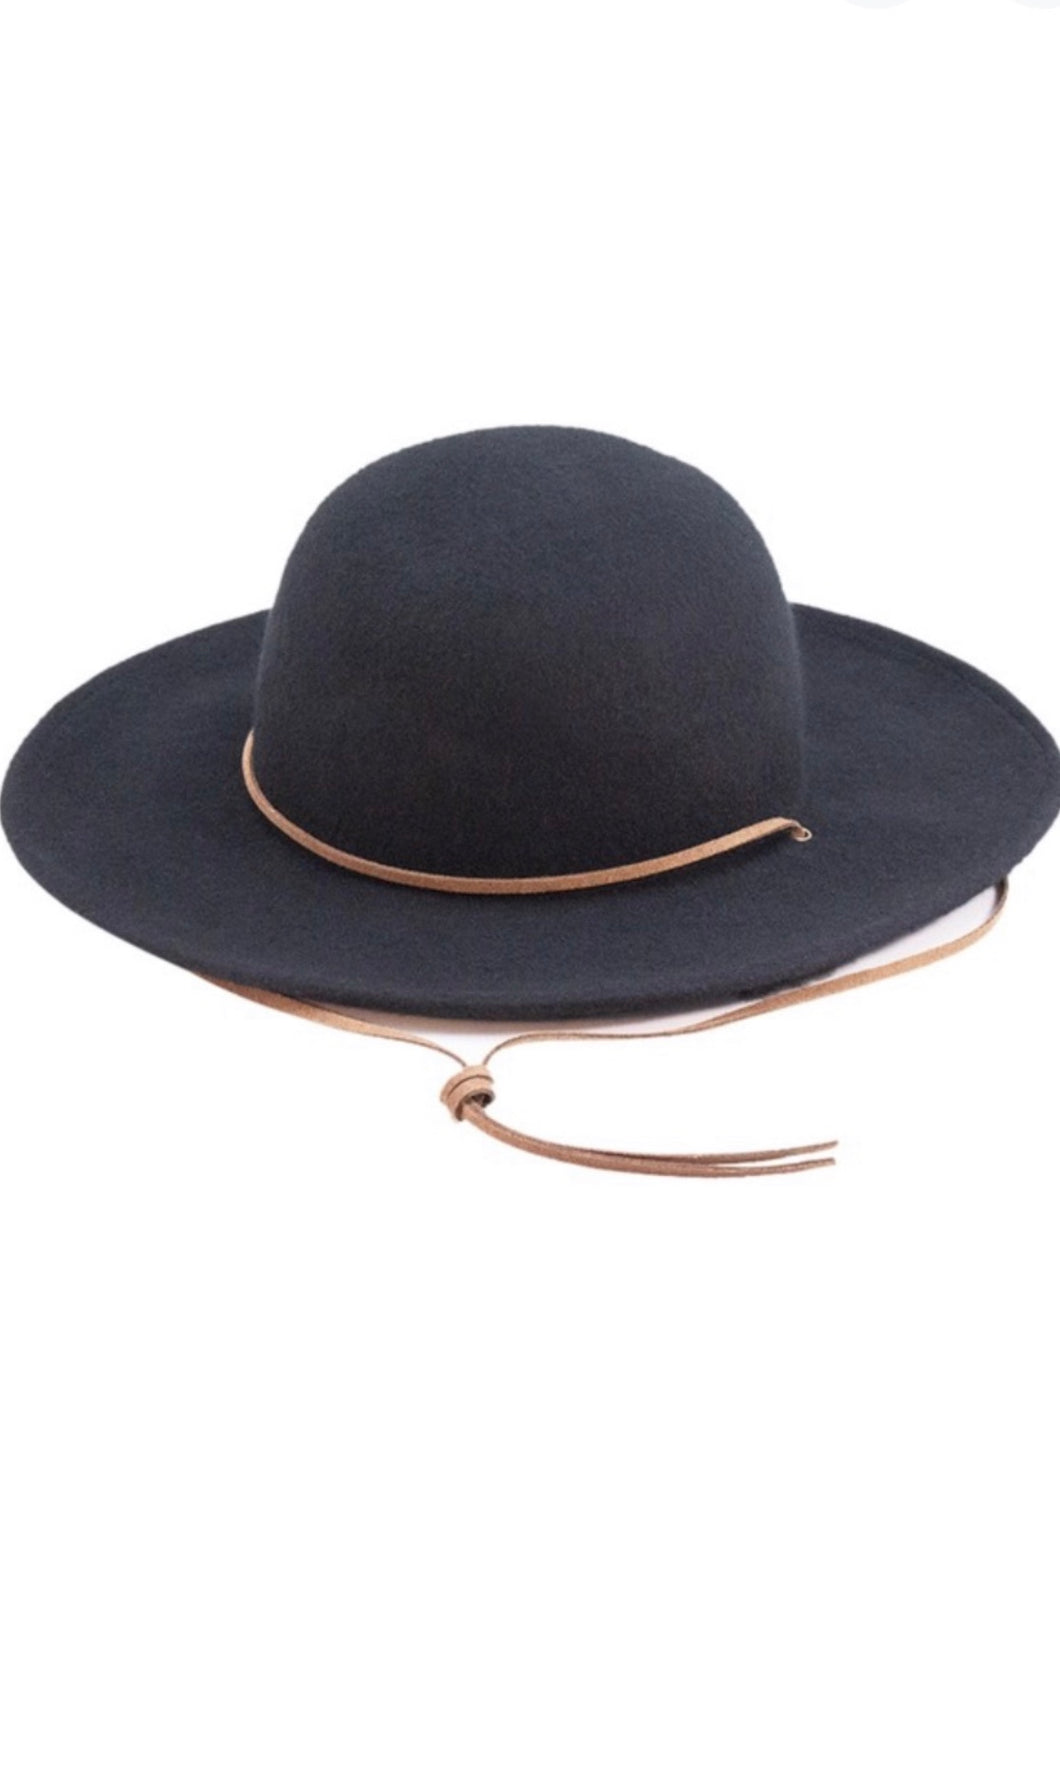 Collins Black Boho Floppy Wide Brim Hat